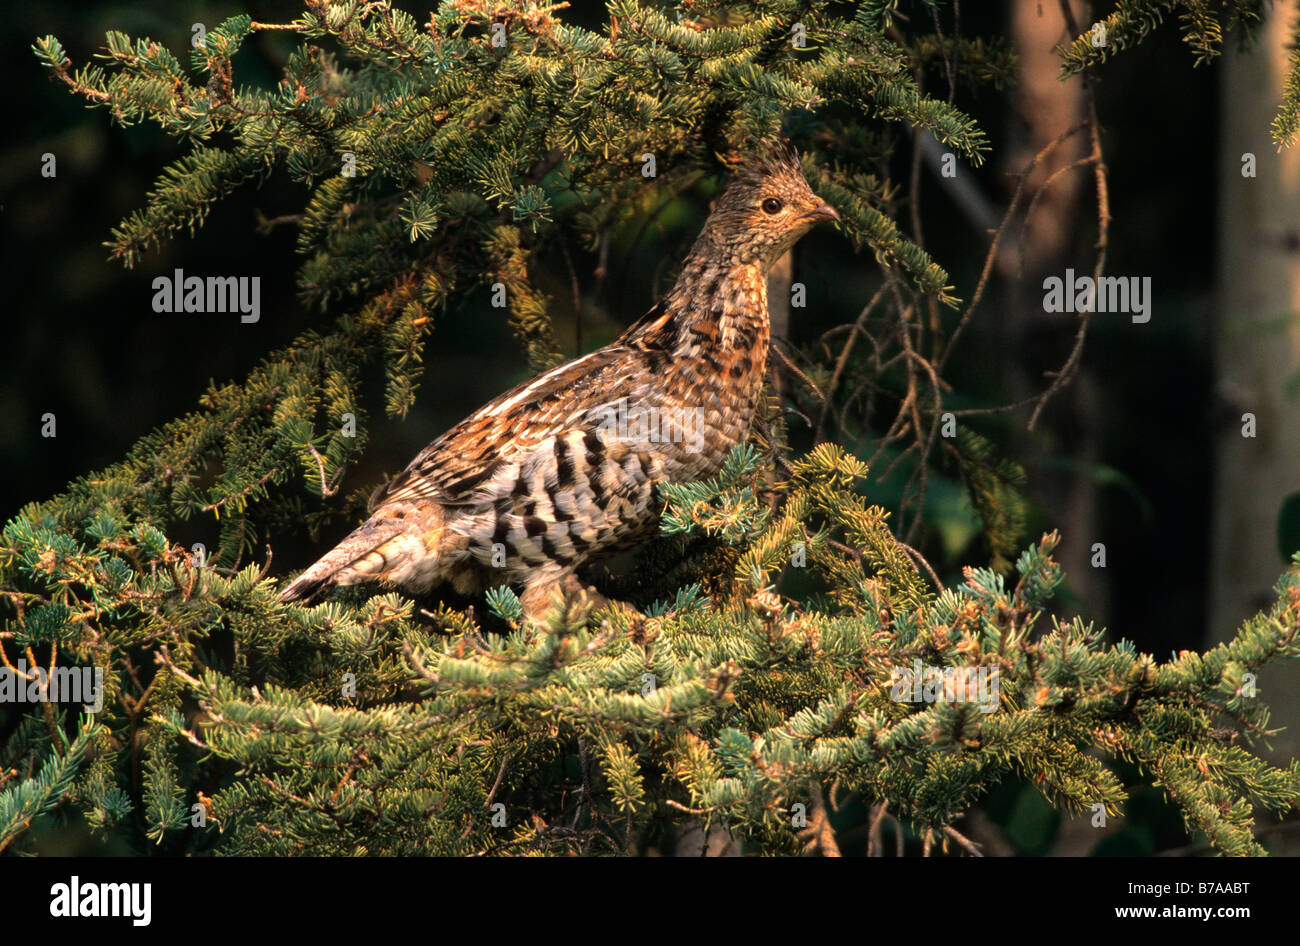 North American Spruce Grouse (Falcipennis canadensis), female, Northwest Territory, Canada, North America - Stock Image